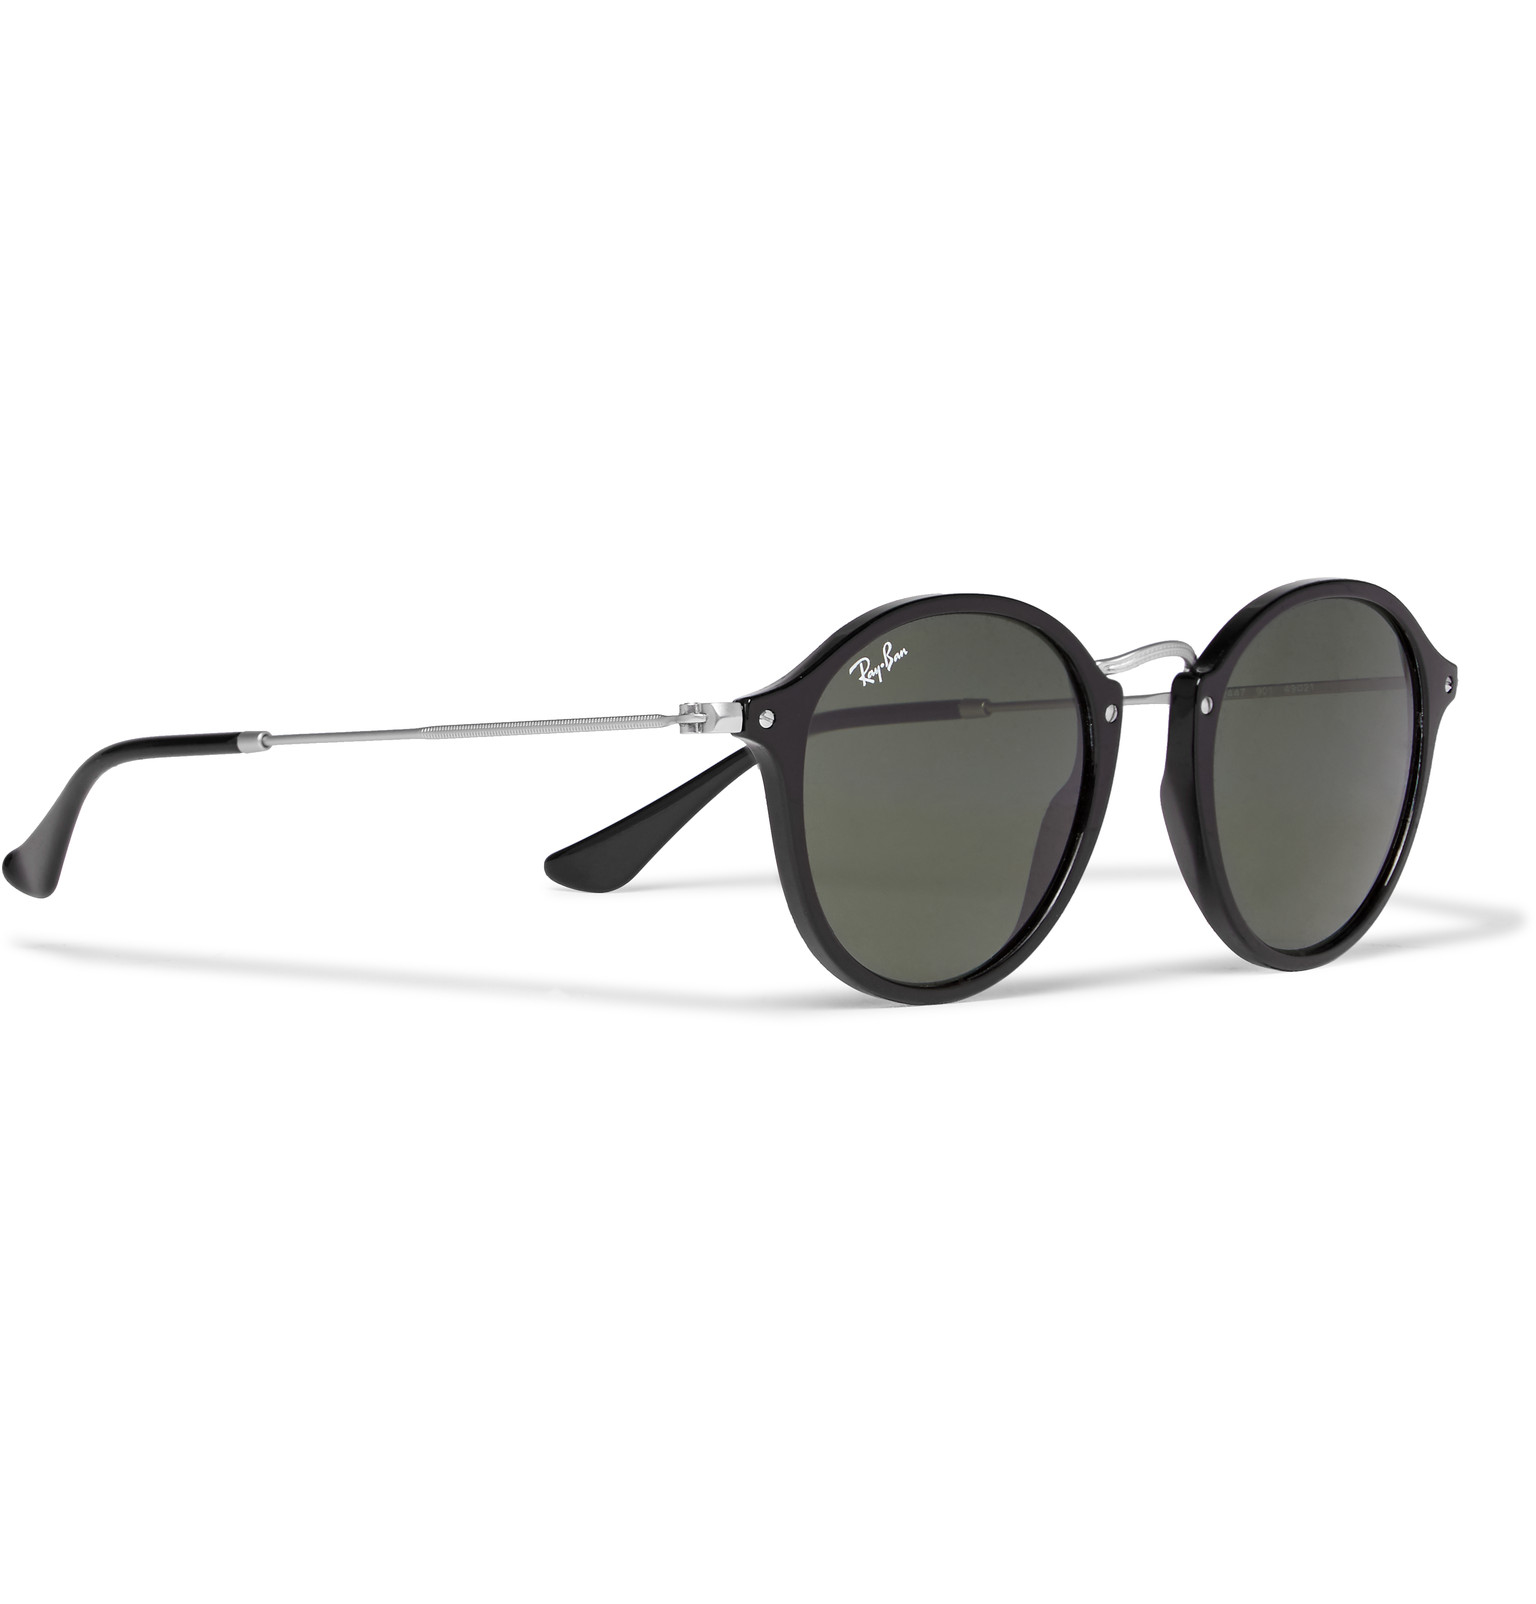 a57d71a6c8 Ray Ban Round Black Sunglasses « Heritage Malta